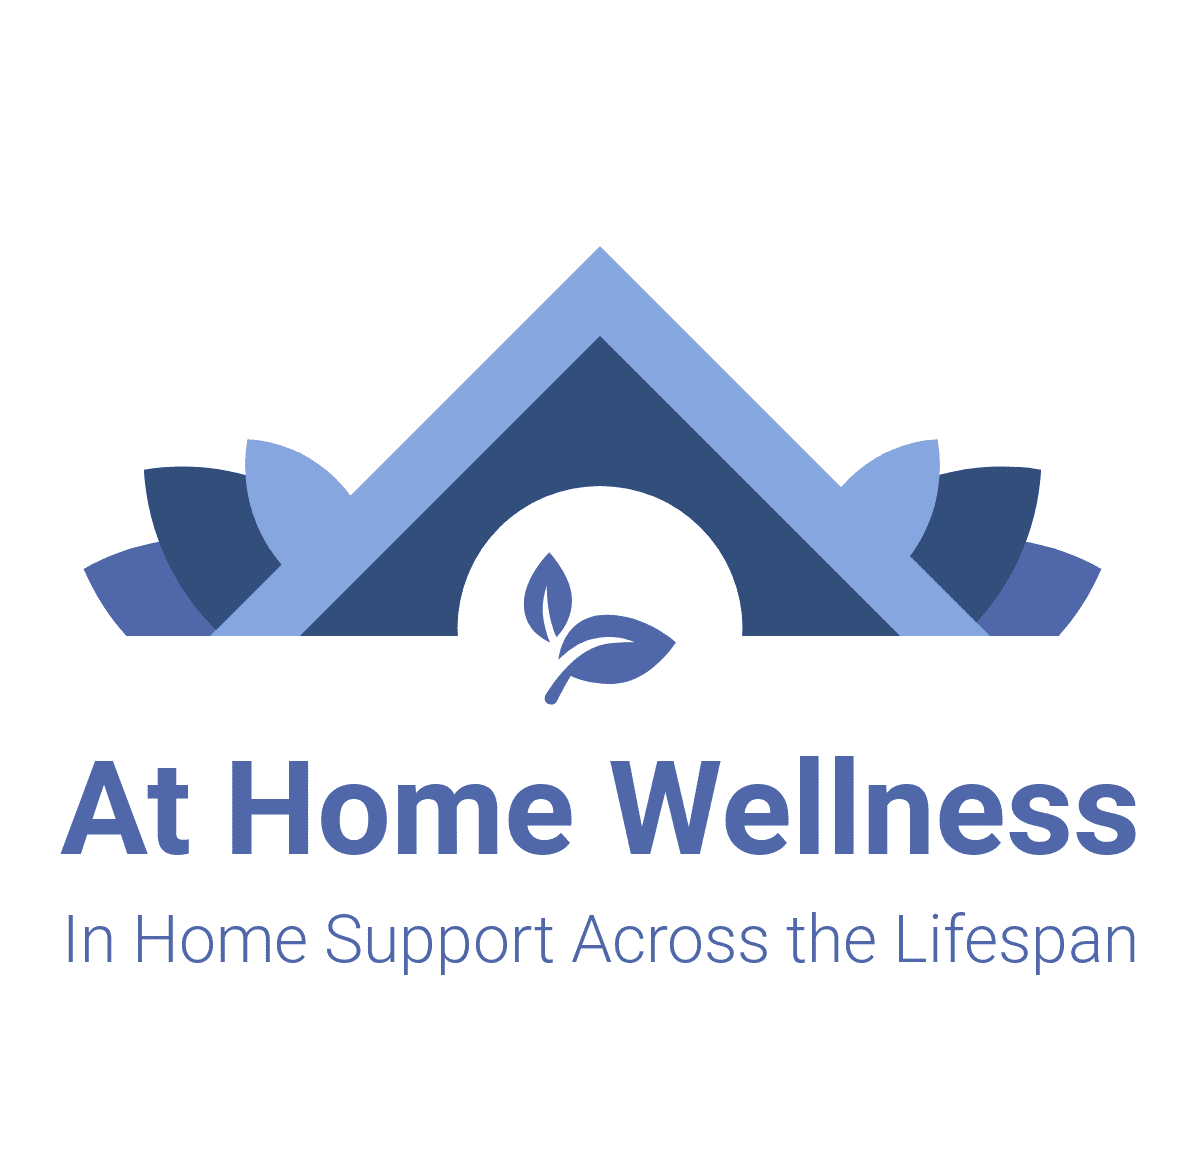 At Home Wellness